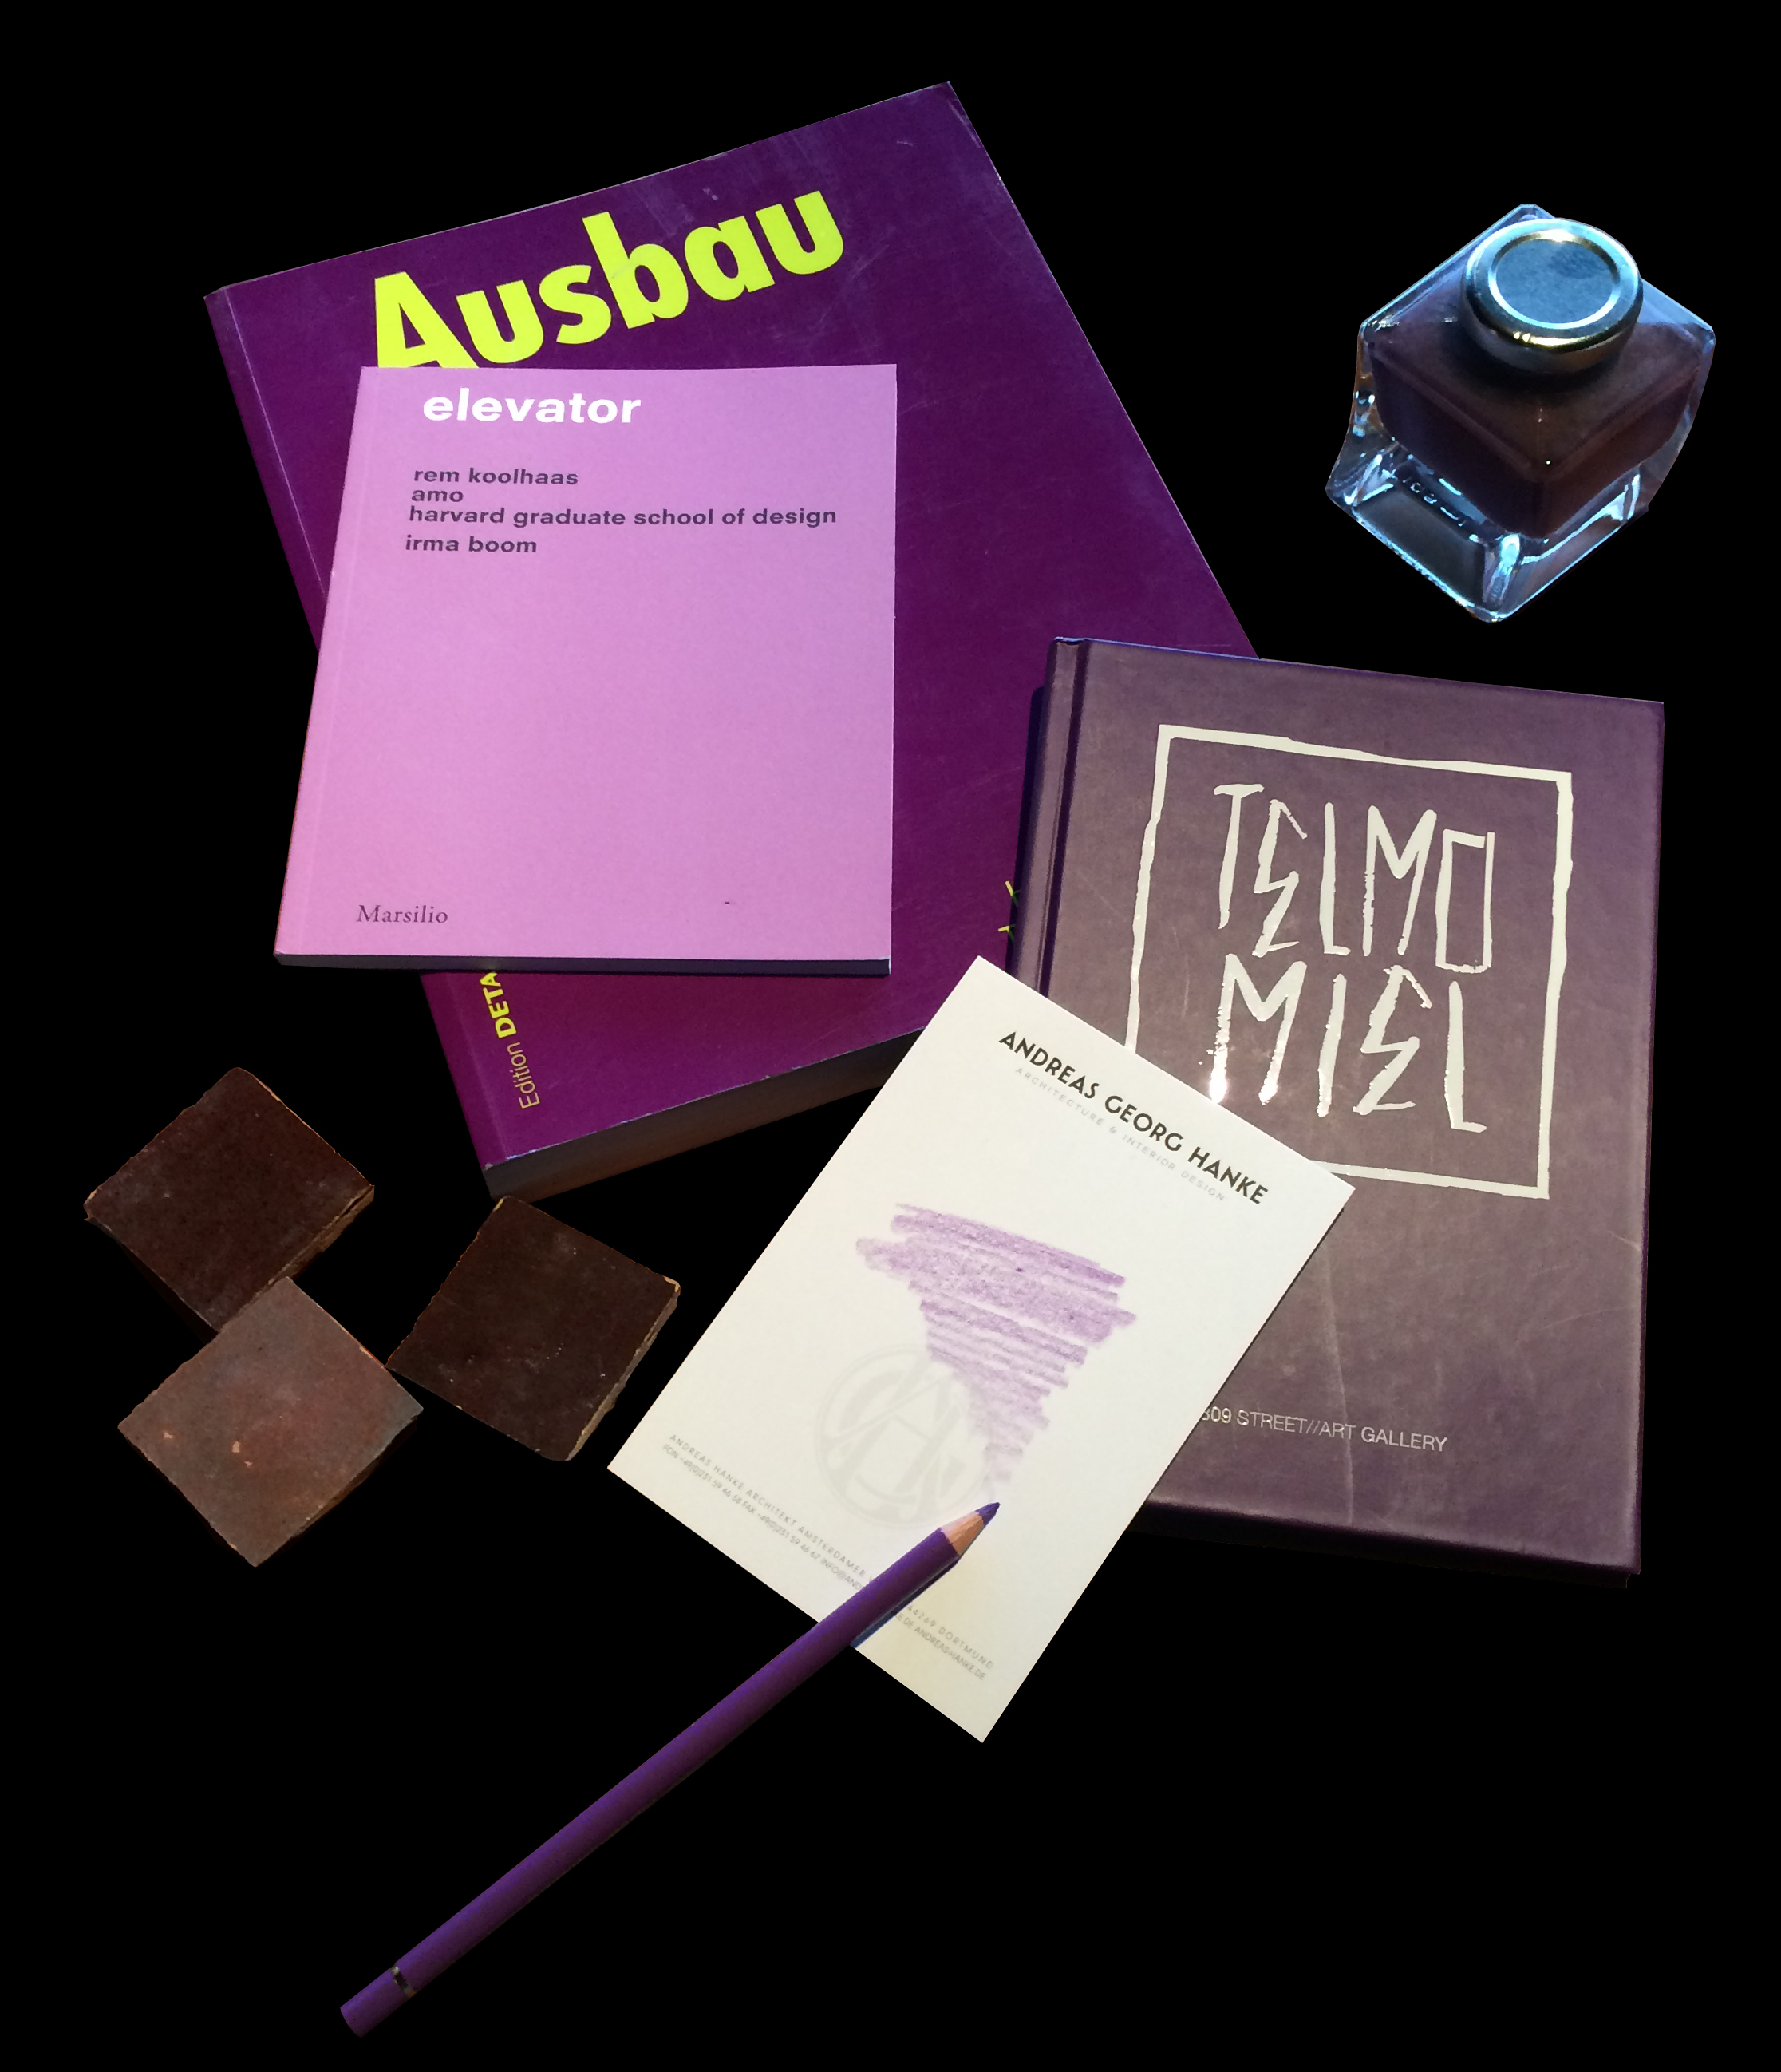 Color of the month - February - Violet